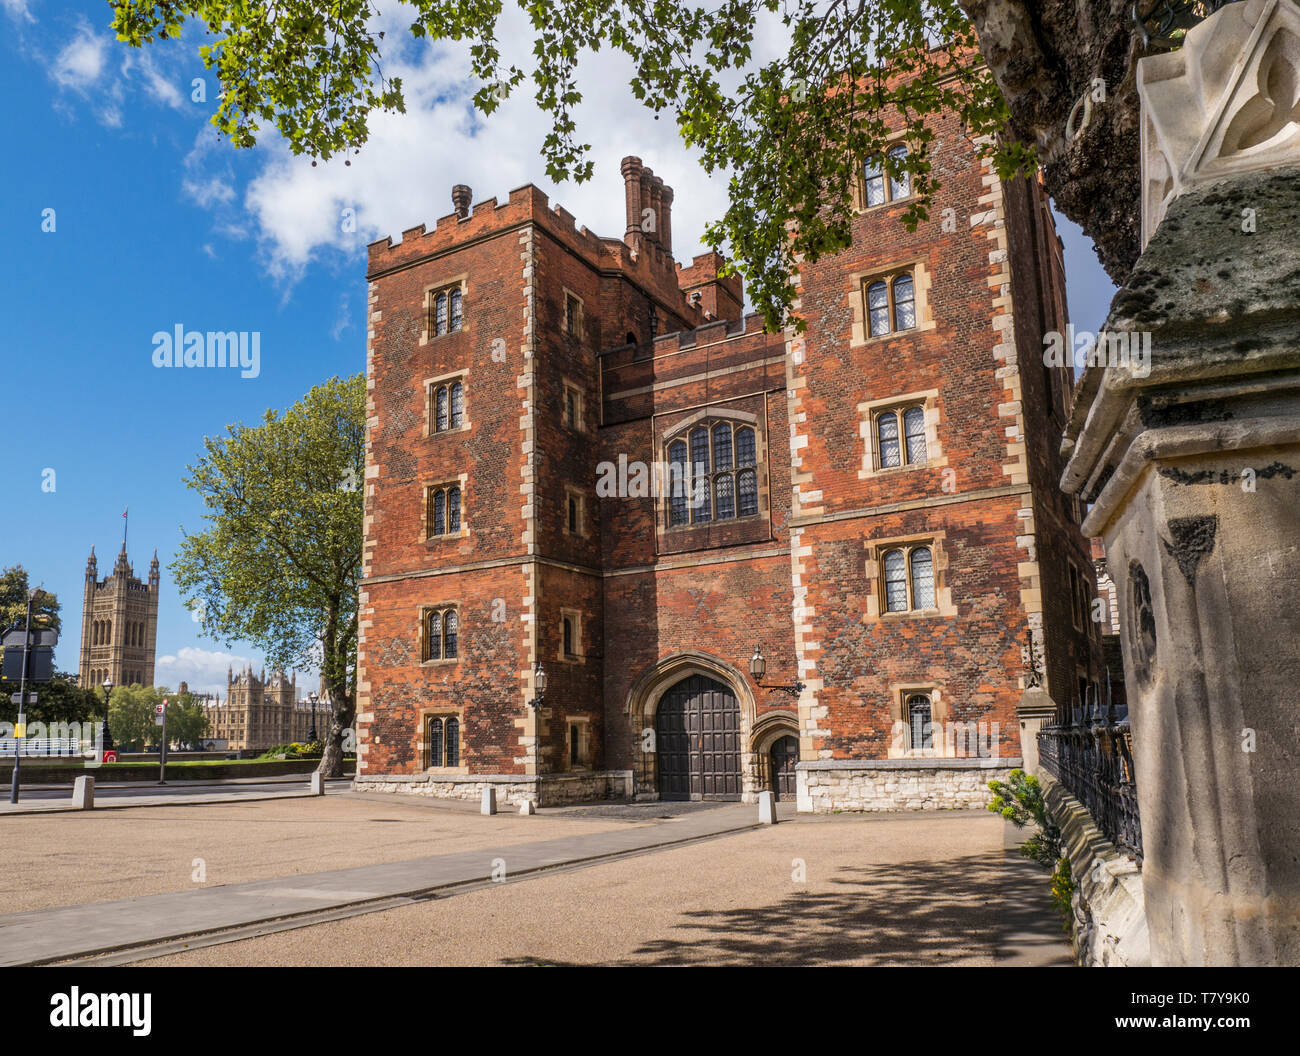 Lambeth Palace London. Morton's Tower with Houses of Parliament behind. Red brick Tudor gatehouse forming the entrance to Lambeth Palace London UK - Stock Image